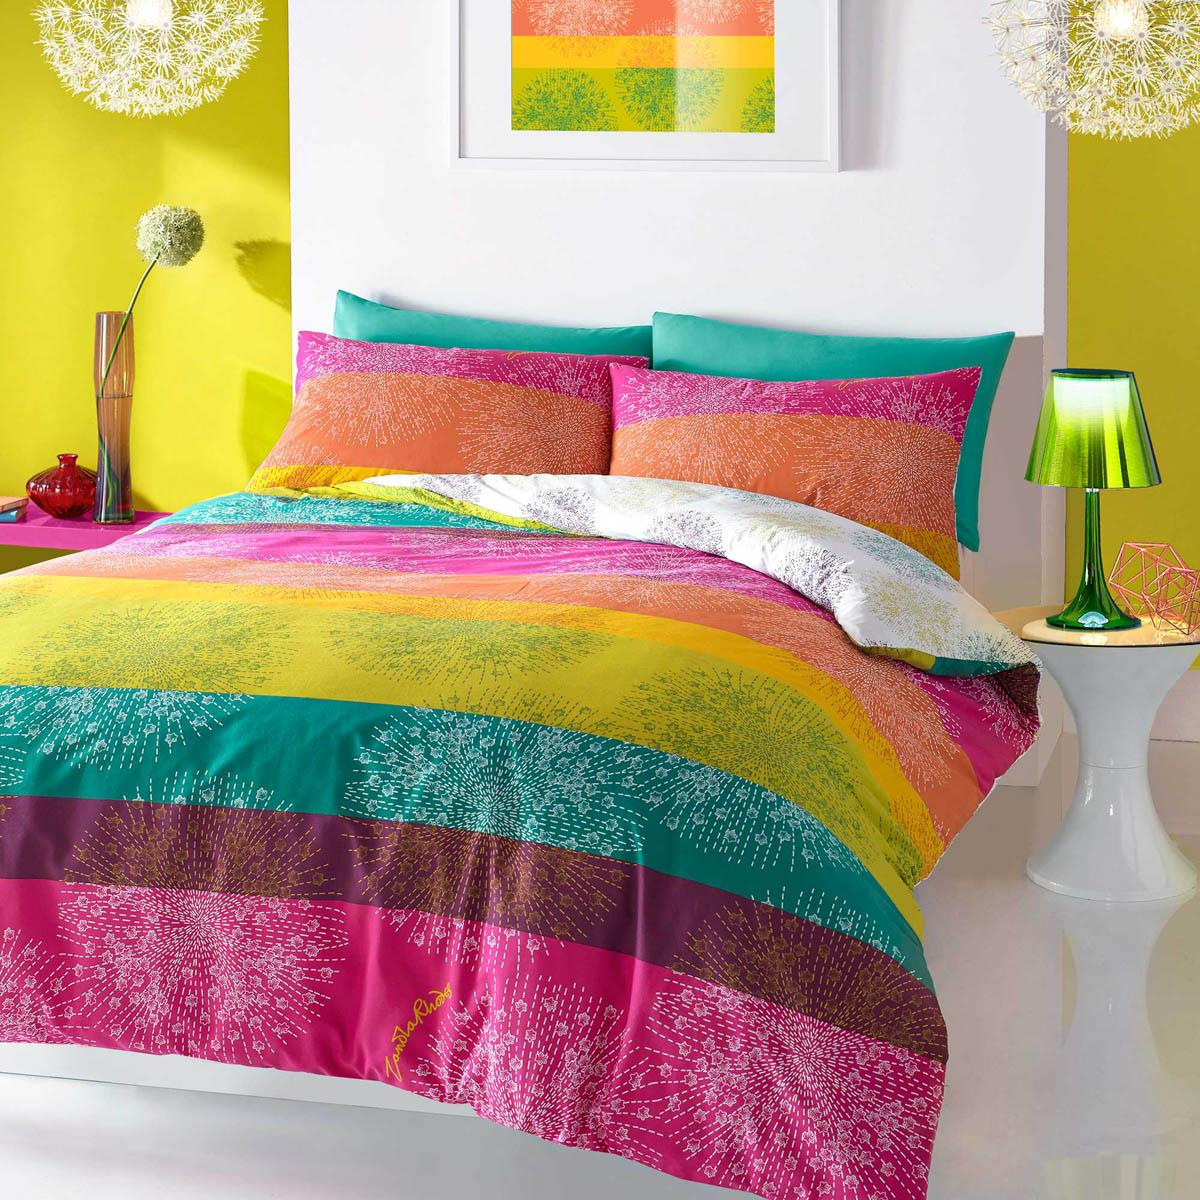 Image of: Use Colorful Bedding Sets